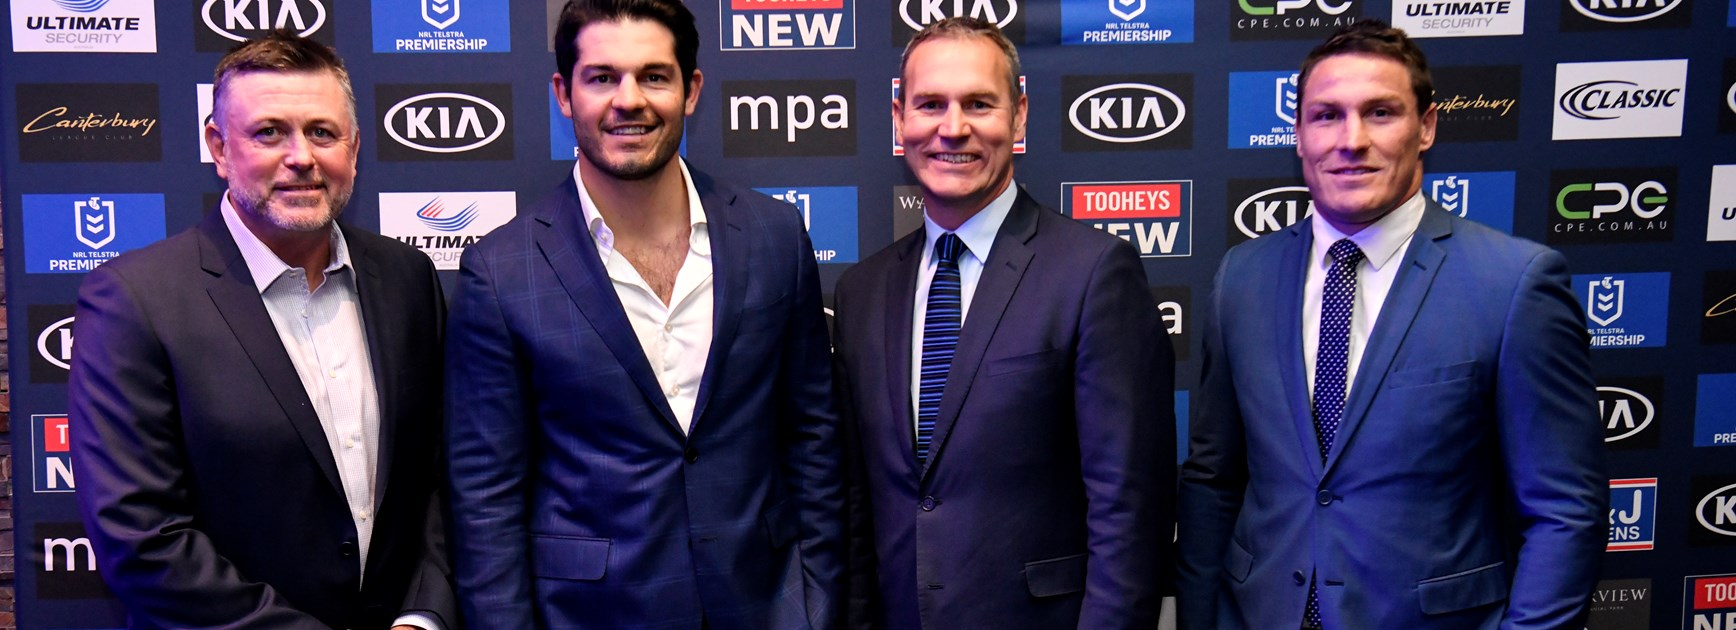 Kia to become the Bulldogs Principal Community Partner for the next three years